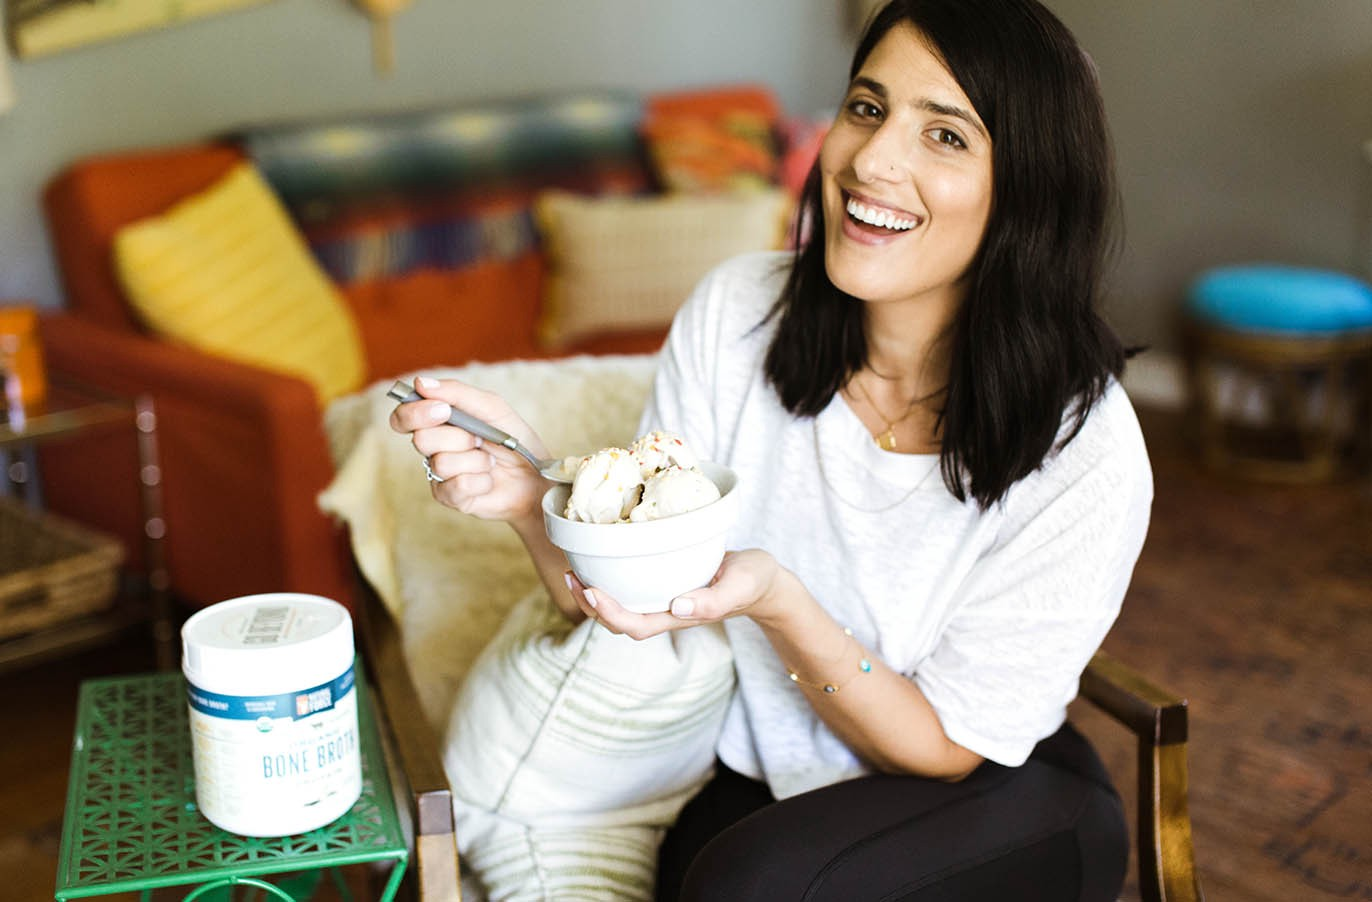 attractive woman smiling holding a bowl of guilt-free cake batter bone broth n'ice cream beside a container of natural force vanilla organic bone broth protein